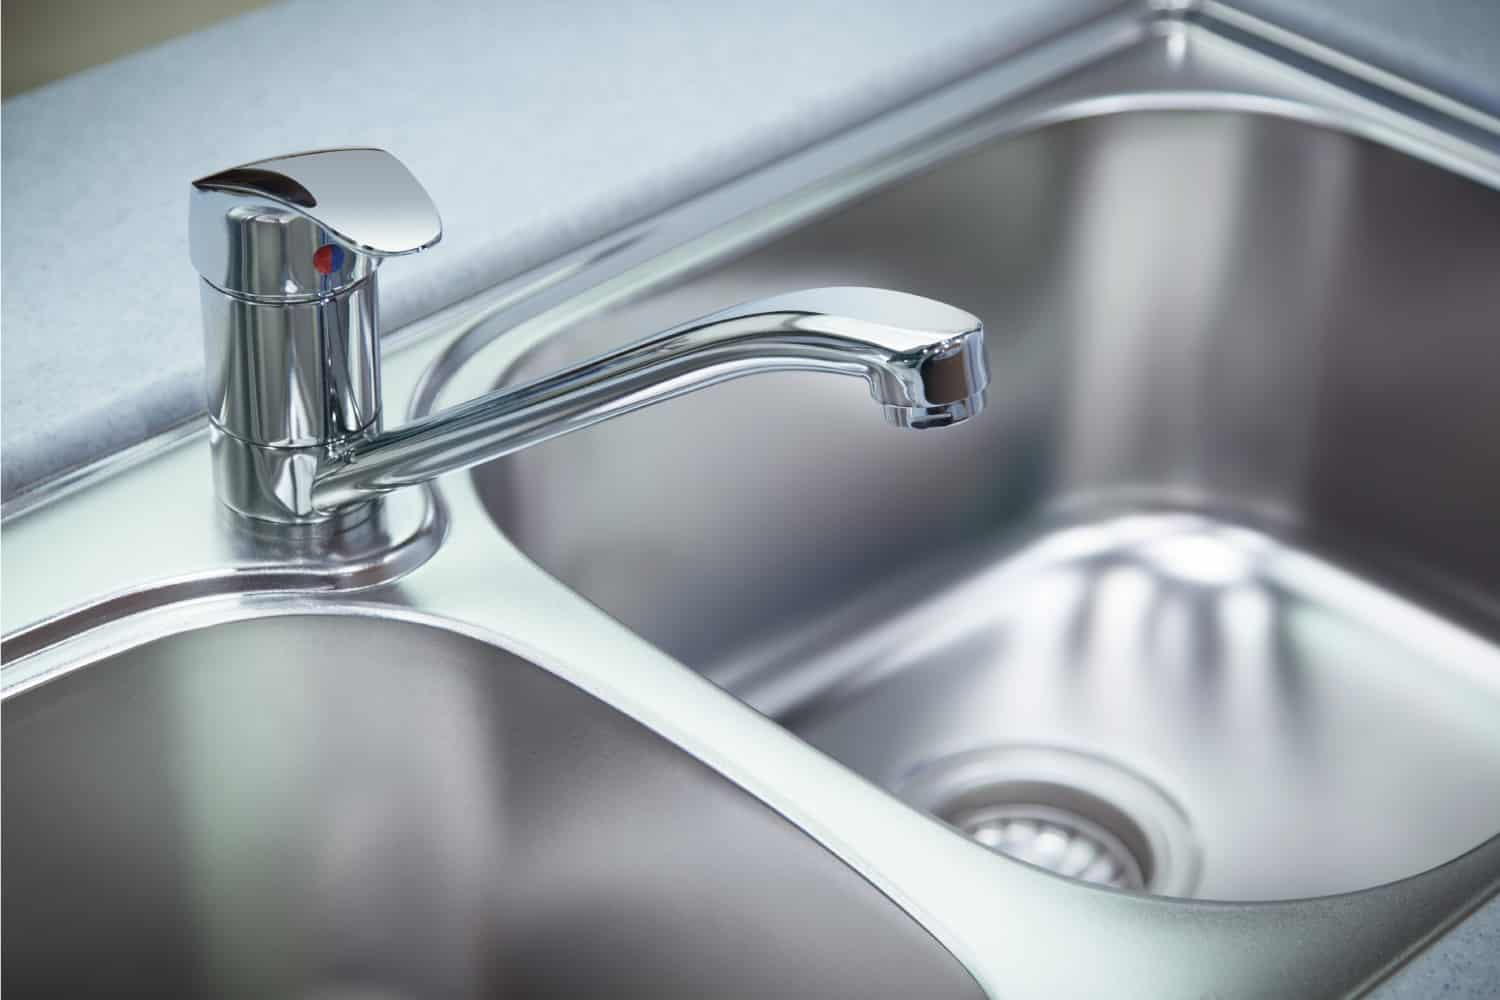 Clean chrome tap and stainless steel kitchen sinks